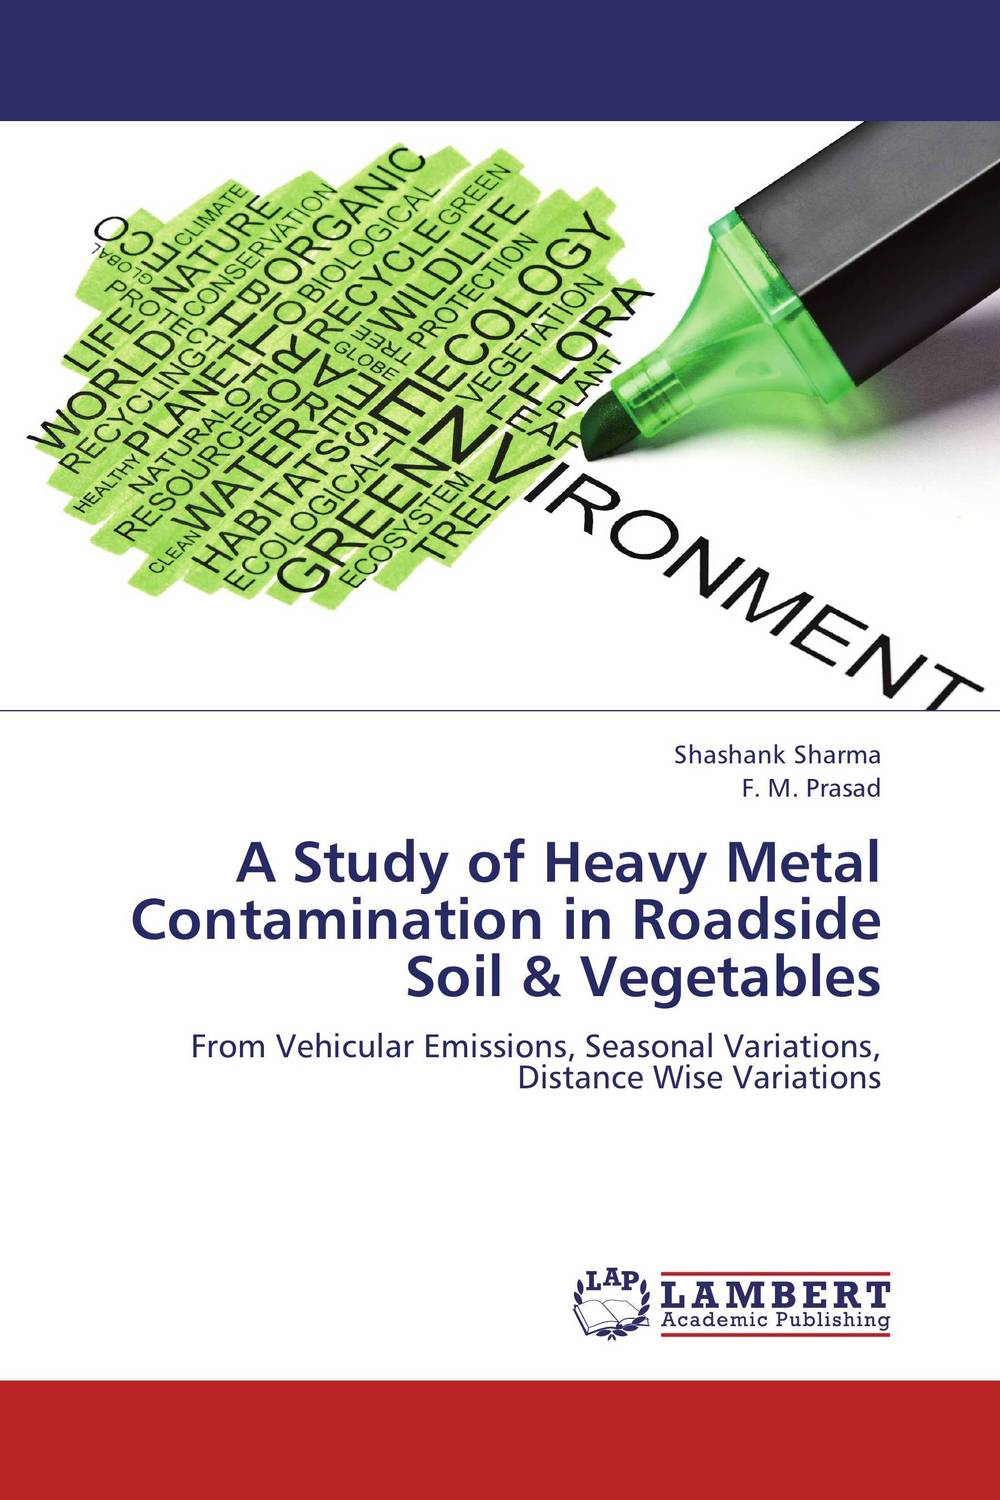 A Study of Heavy Metal Contamination in Roadside Soil & Vegetables